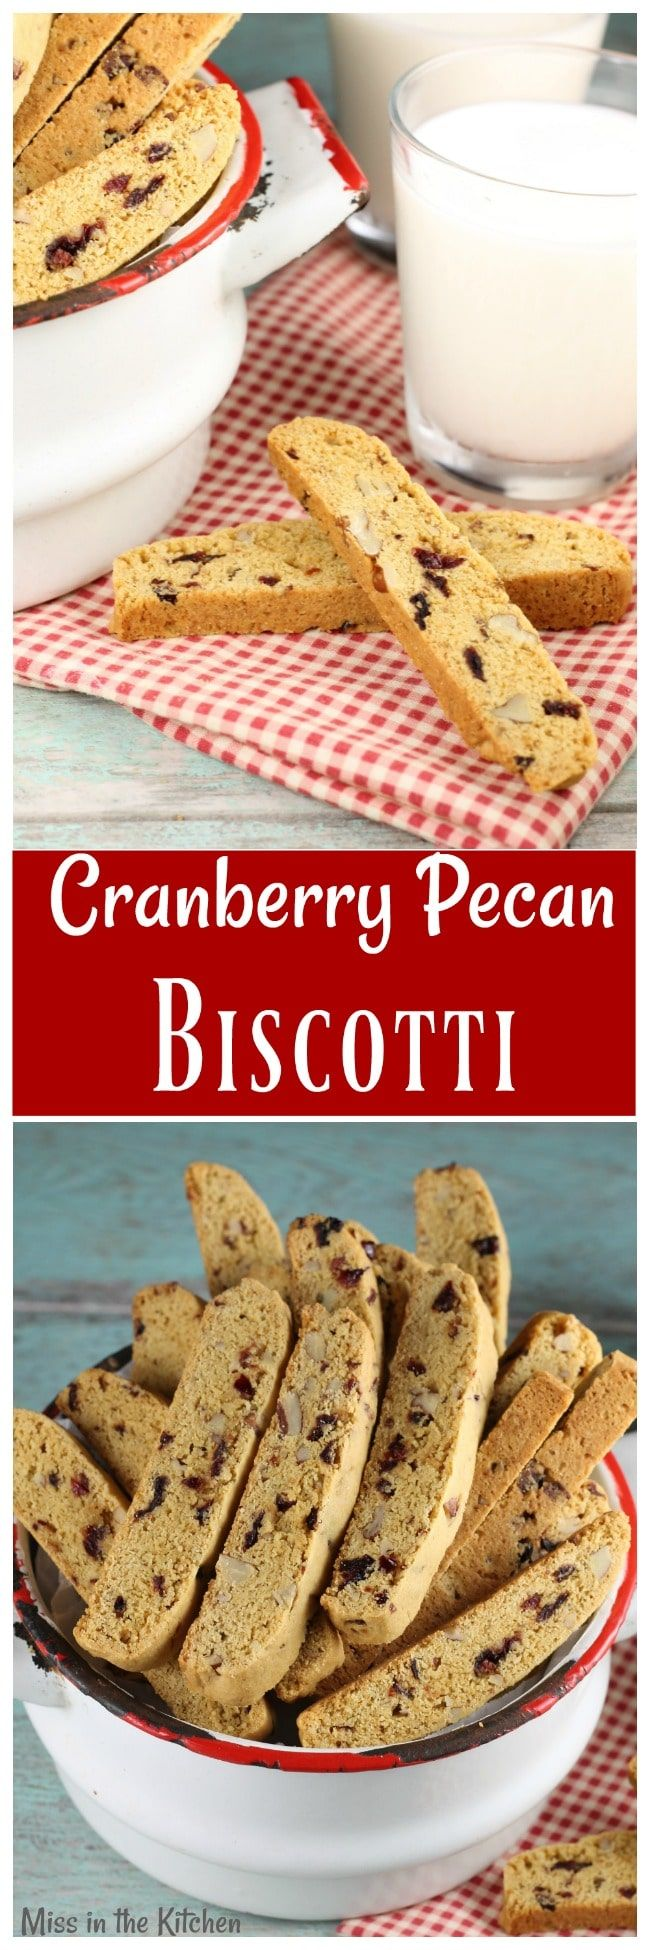 Cranberry Pecan Biscotti is the perfect holiday treat to bake and share! My favorite Christmas cookie! Recipe from MissintheKitchen.com #cookies #Christmas #cranberry #pecan